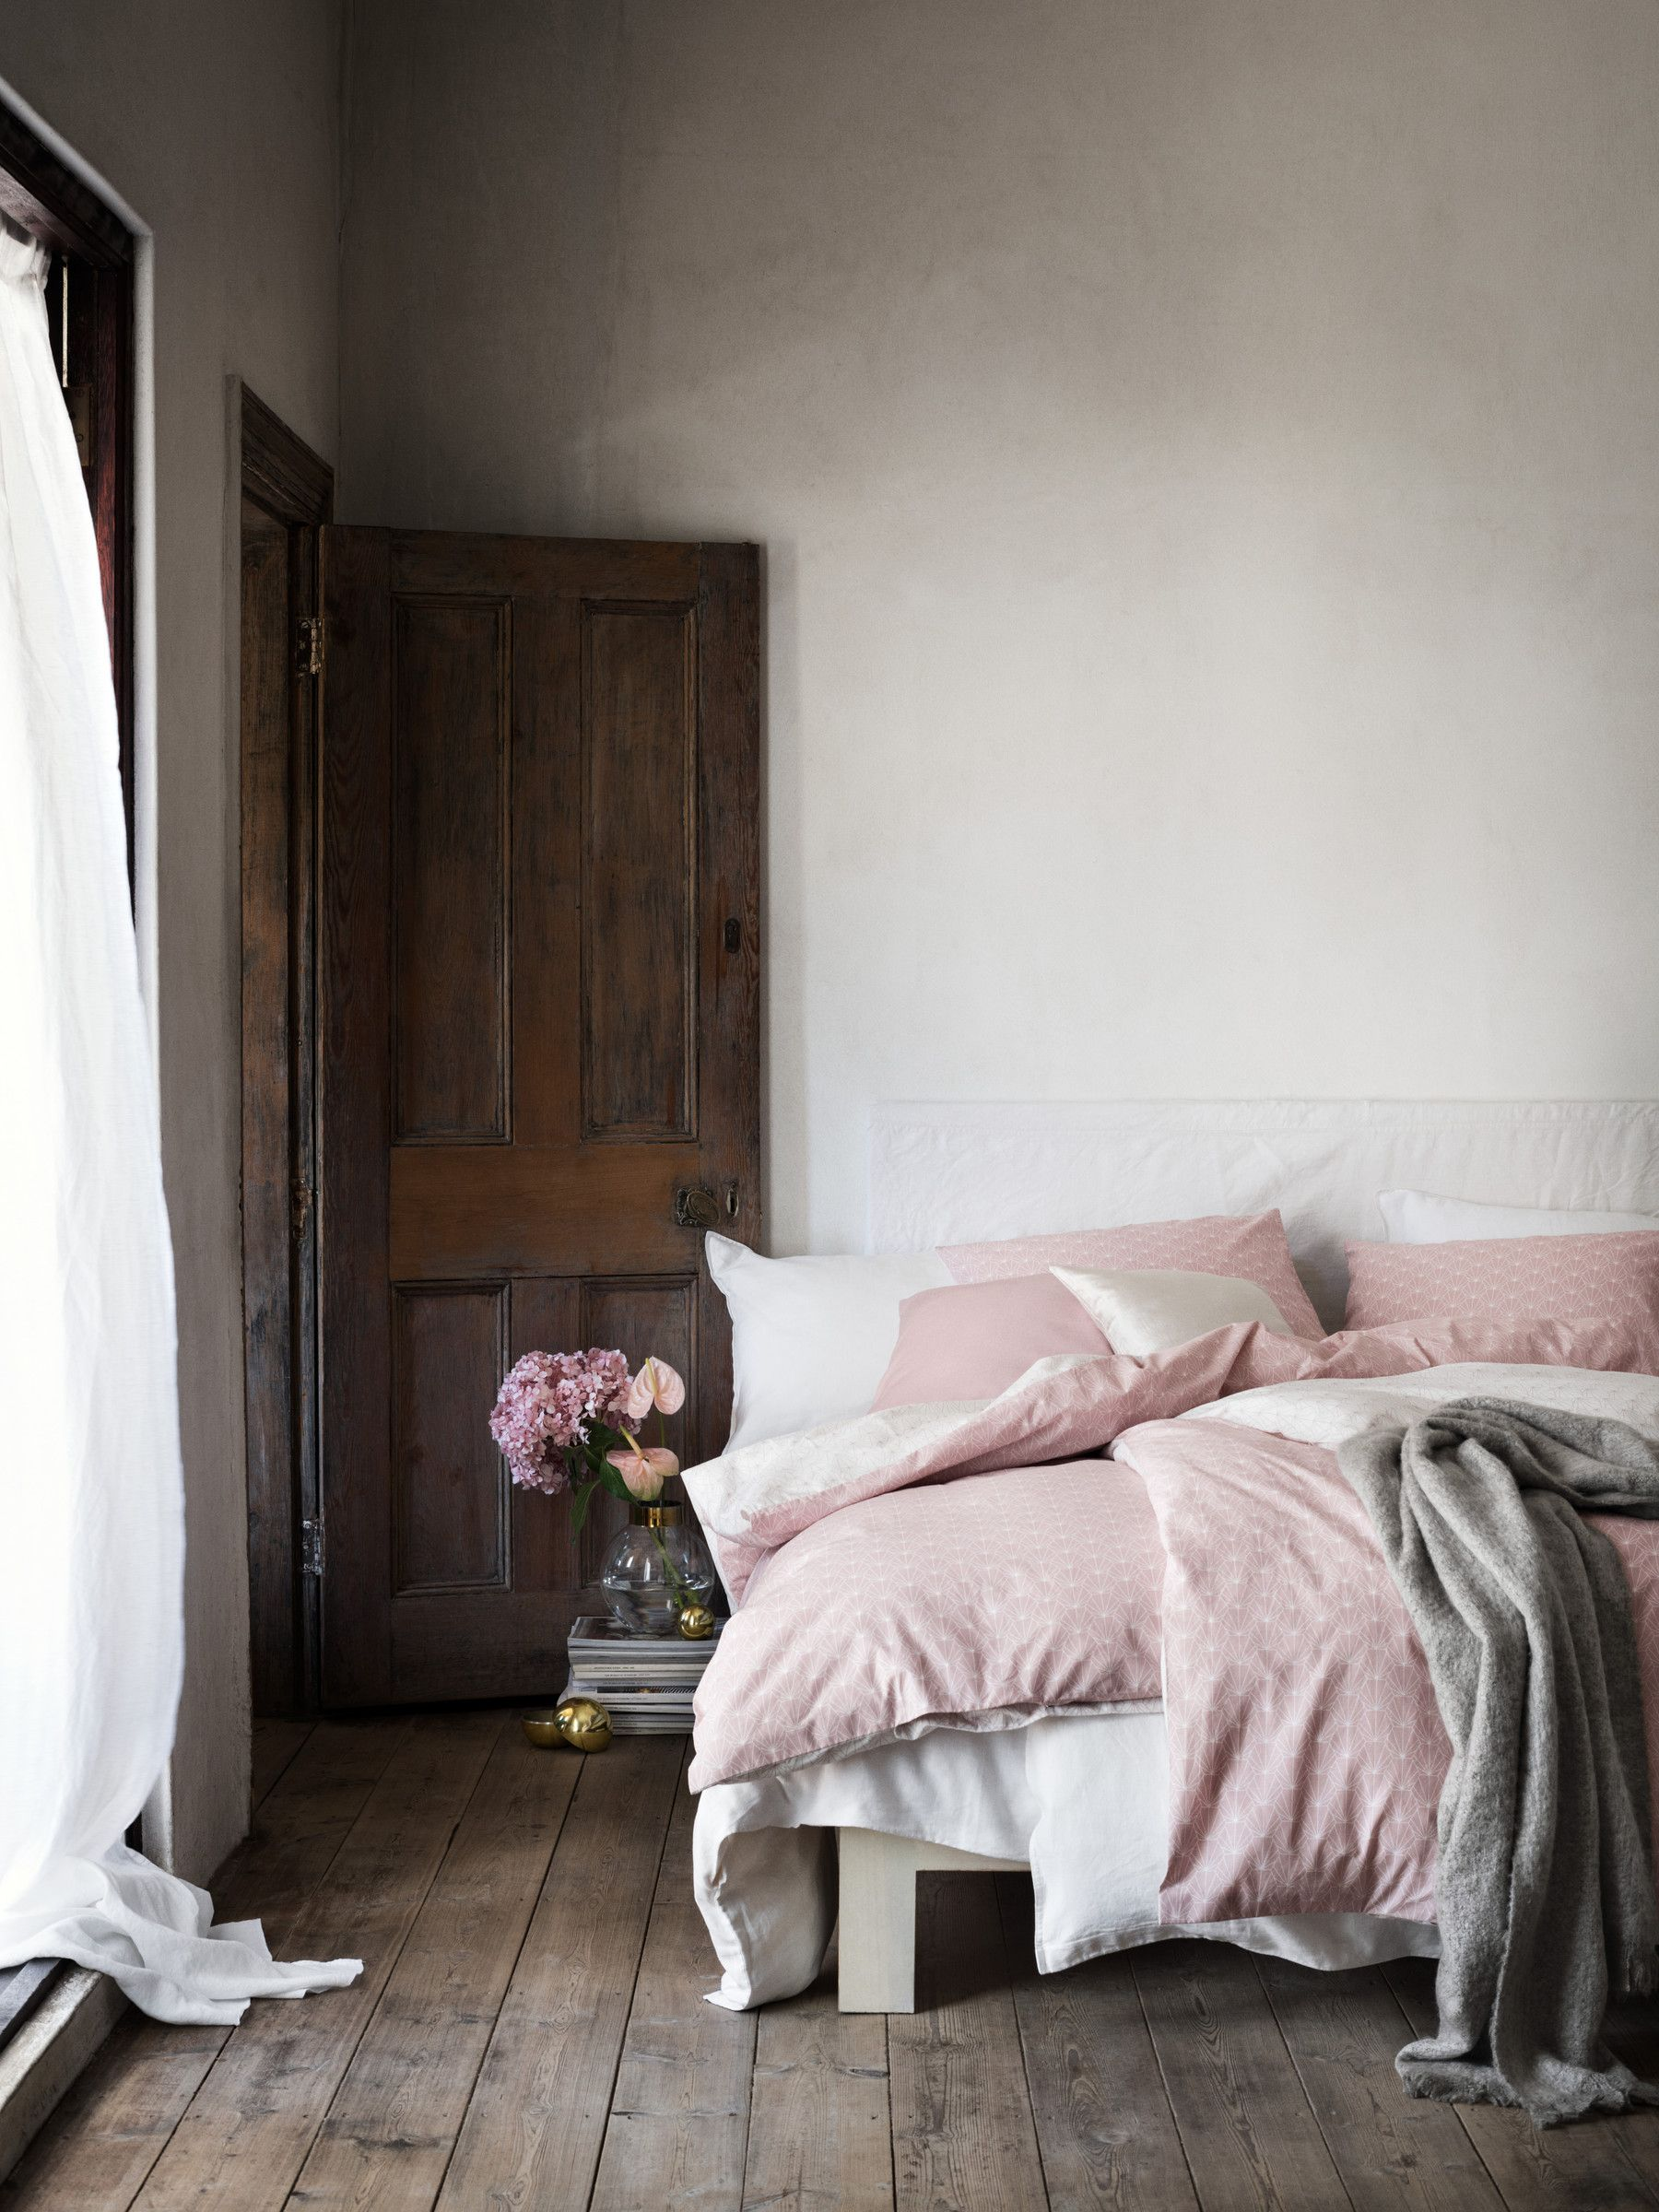 Bedroom Blog Part - 44: Bedroom With Soft Pink Bedding By Hu0026M Home (shop The Look On My Blog)